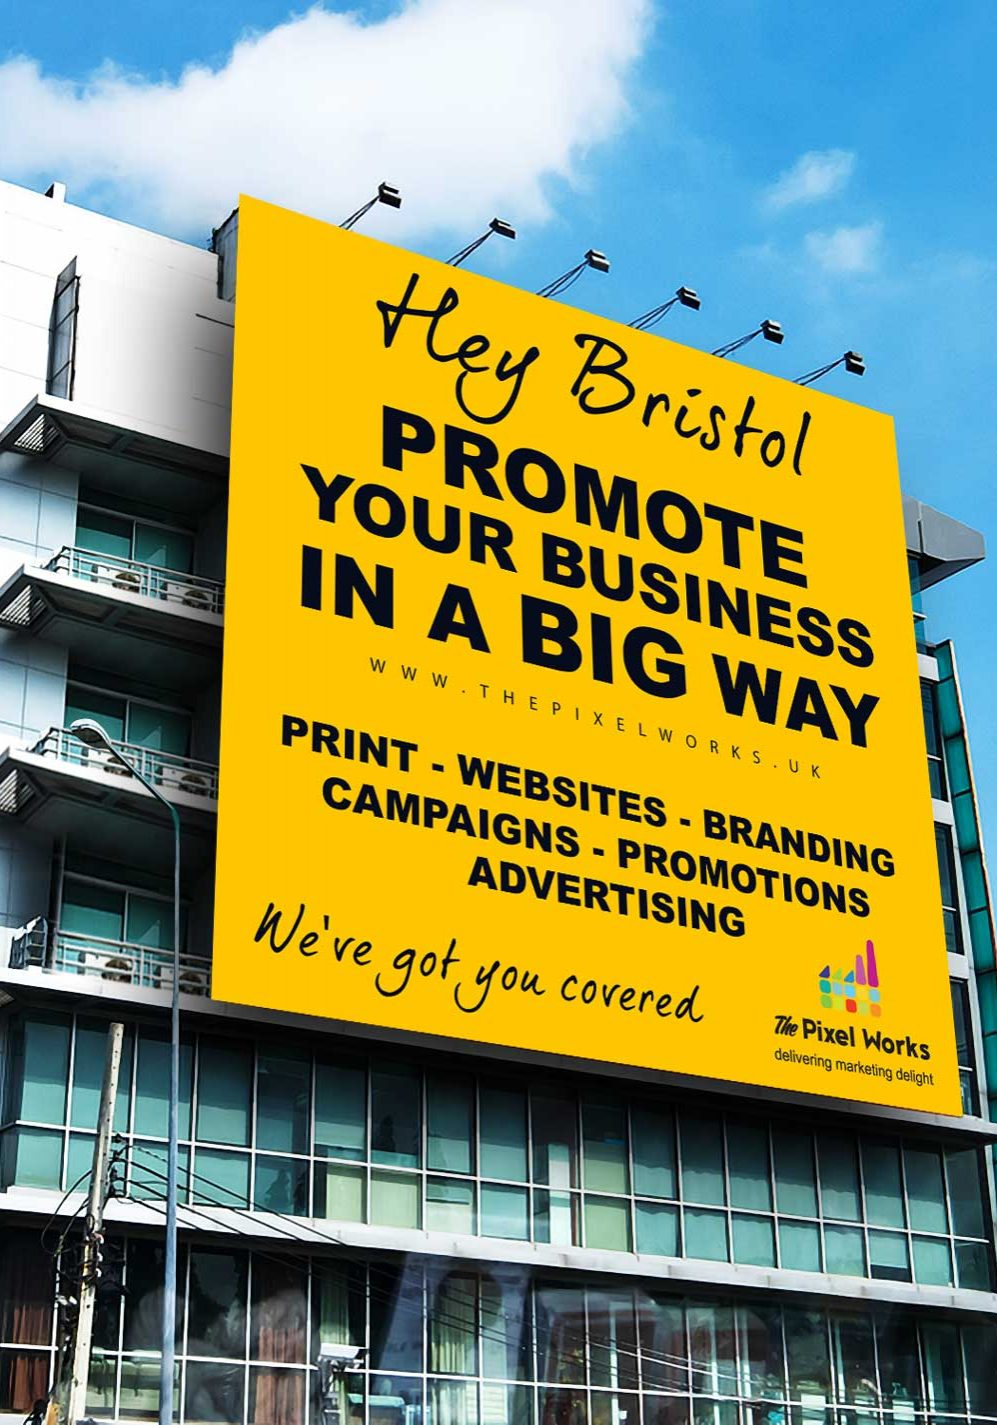 Bristol Marketing Agency for businesses